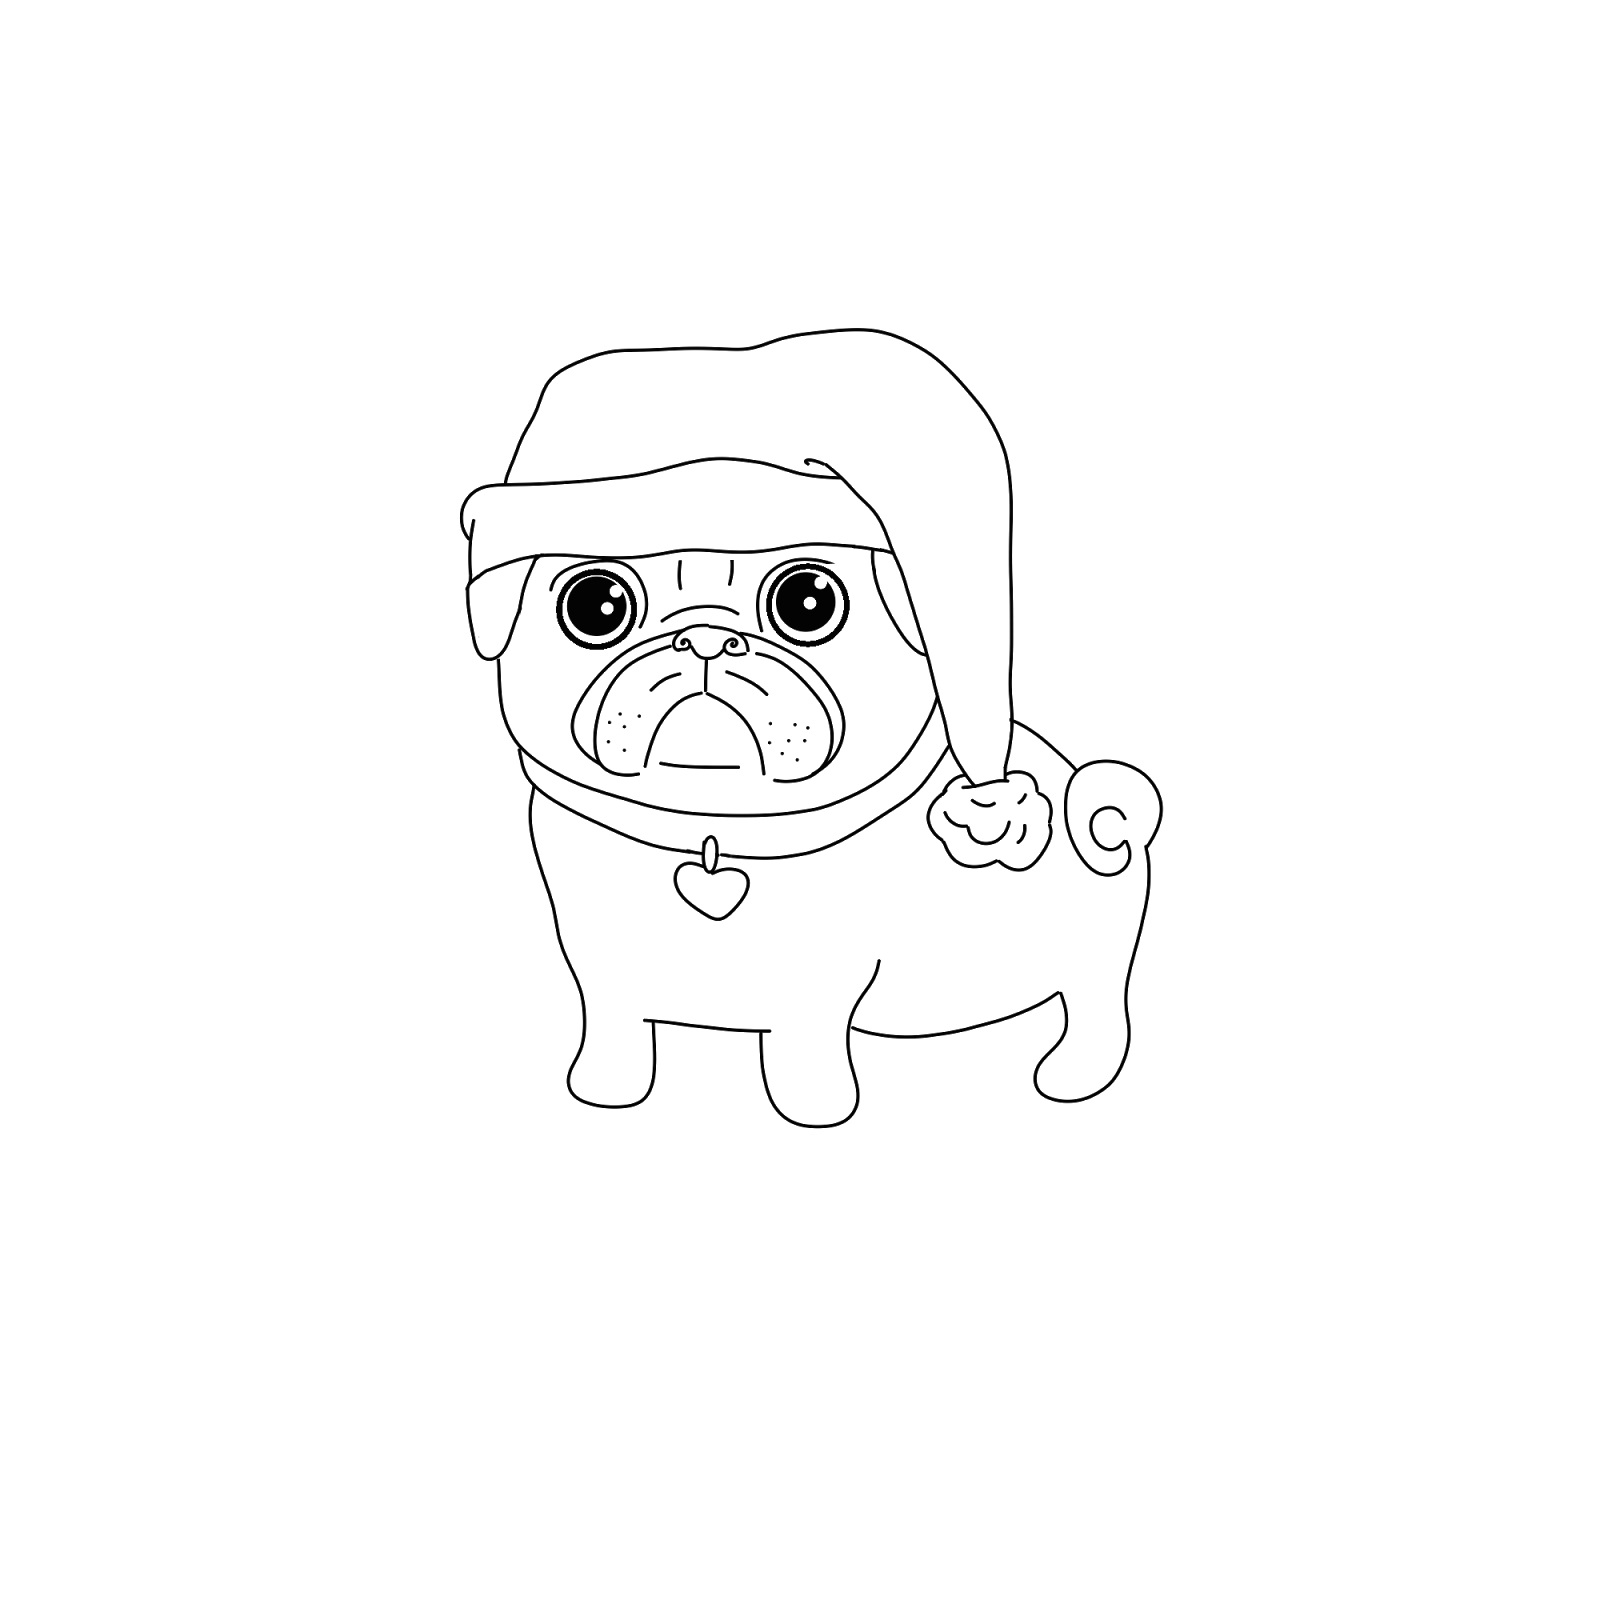 pug coloring pages pug pug funny face coloring page art pinterest pages coloring pug